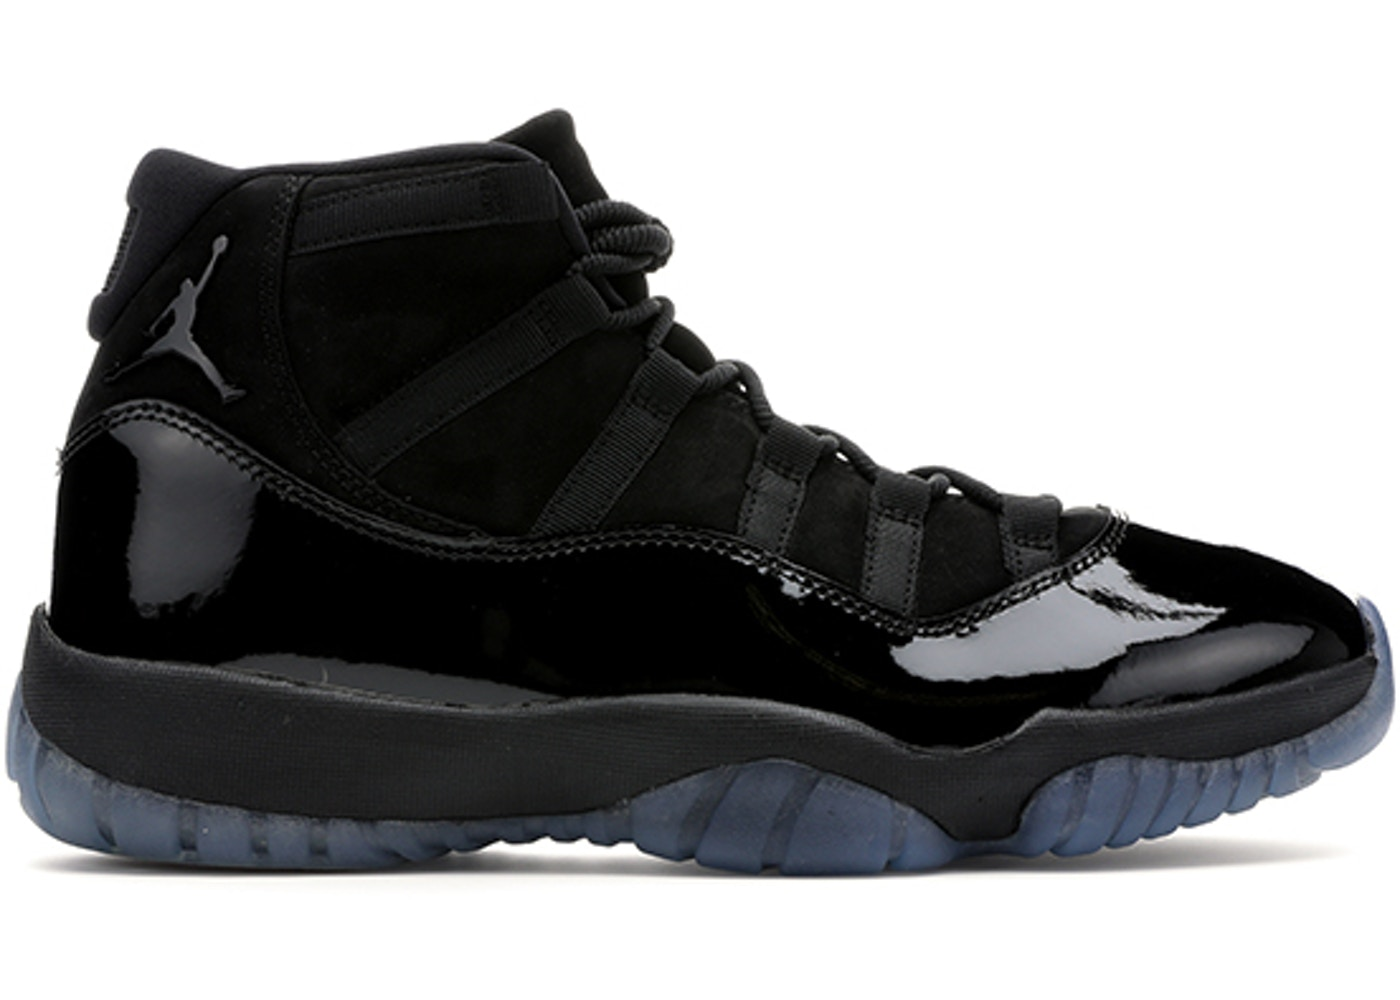 Jordan 11 Retro Cap and Gown - 378037-005 e0e71d9b5